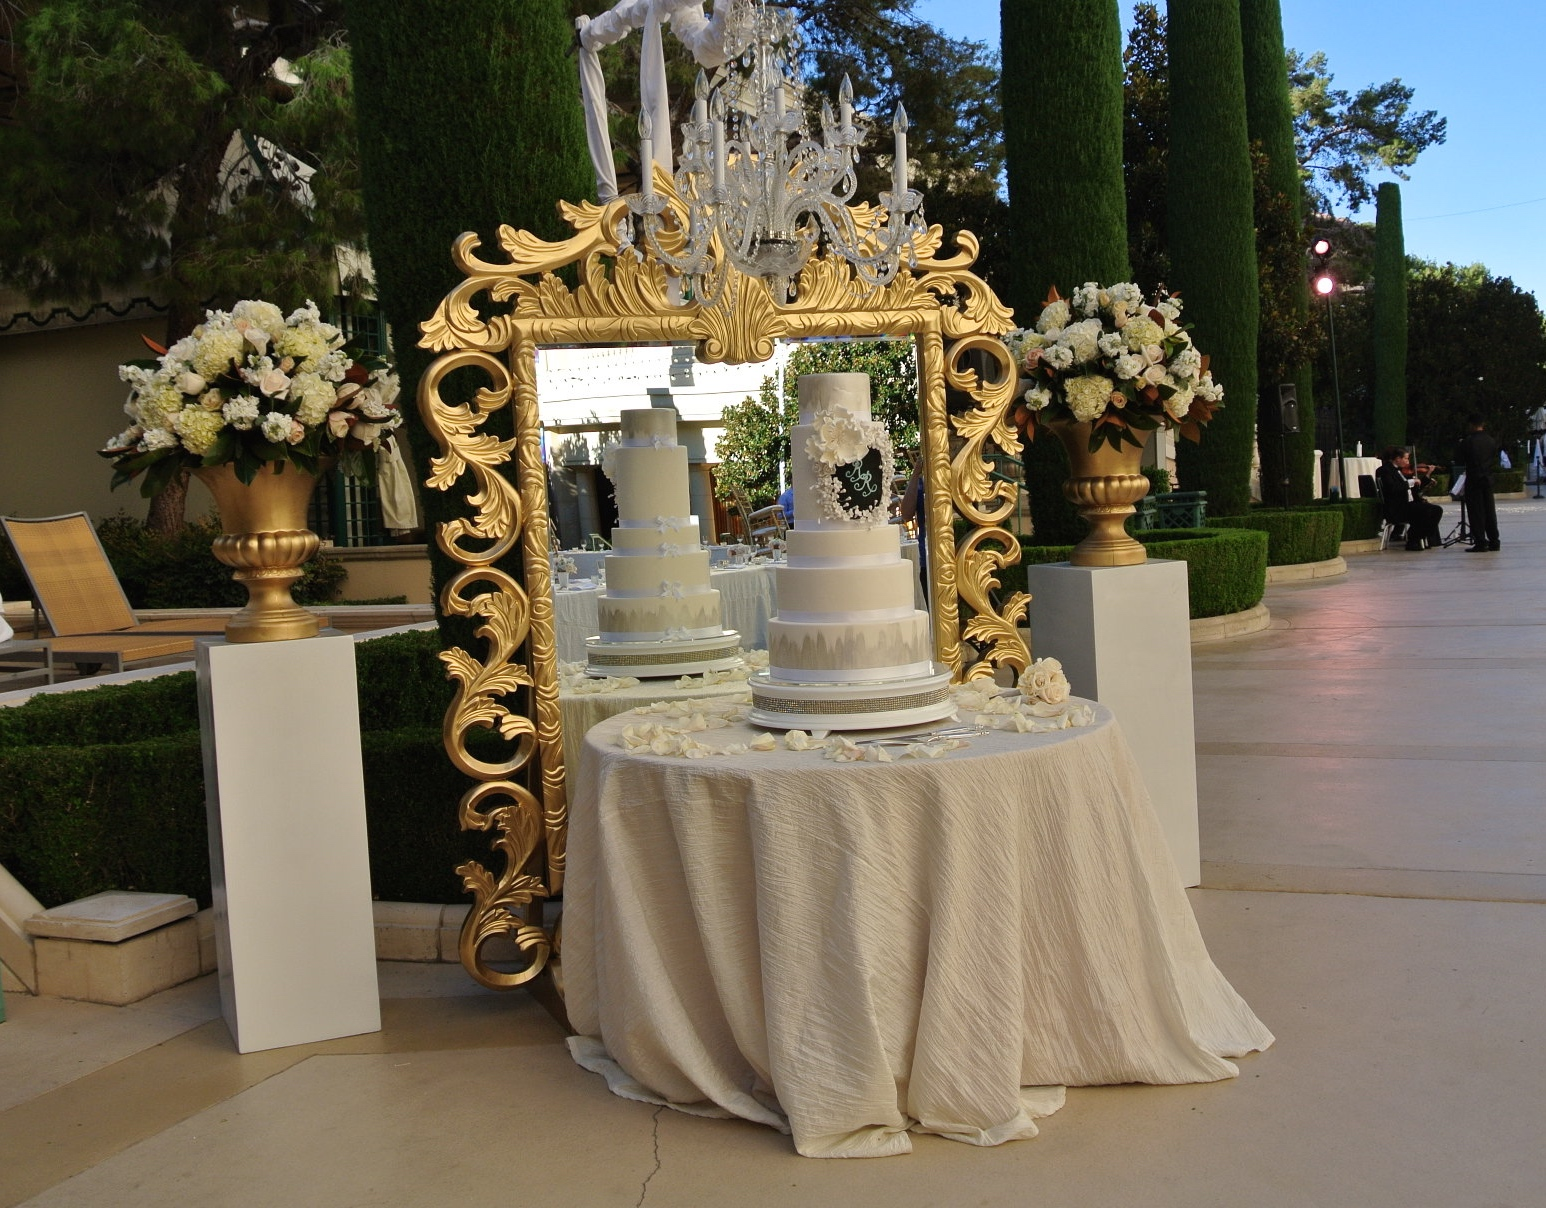 Monogrammed Wedding Cake By Bellagio Las Vegas.  Mirror, Florals, and Lighting by Naakiti.   Las Vegas Wedding Planner Andrea Eppolito  |  Wedding at Bellagio Las Vegas